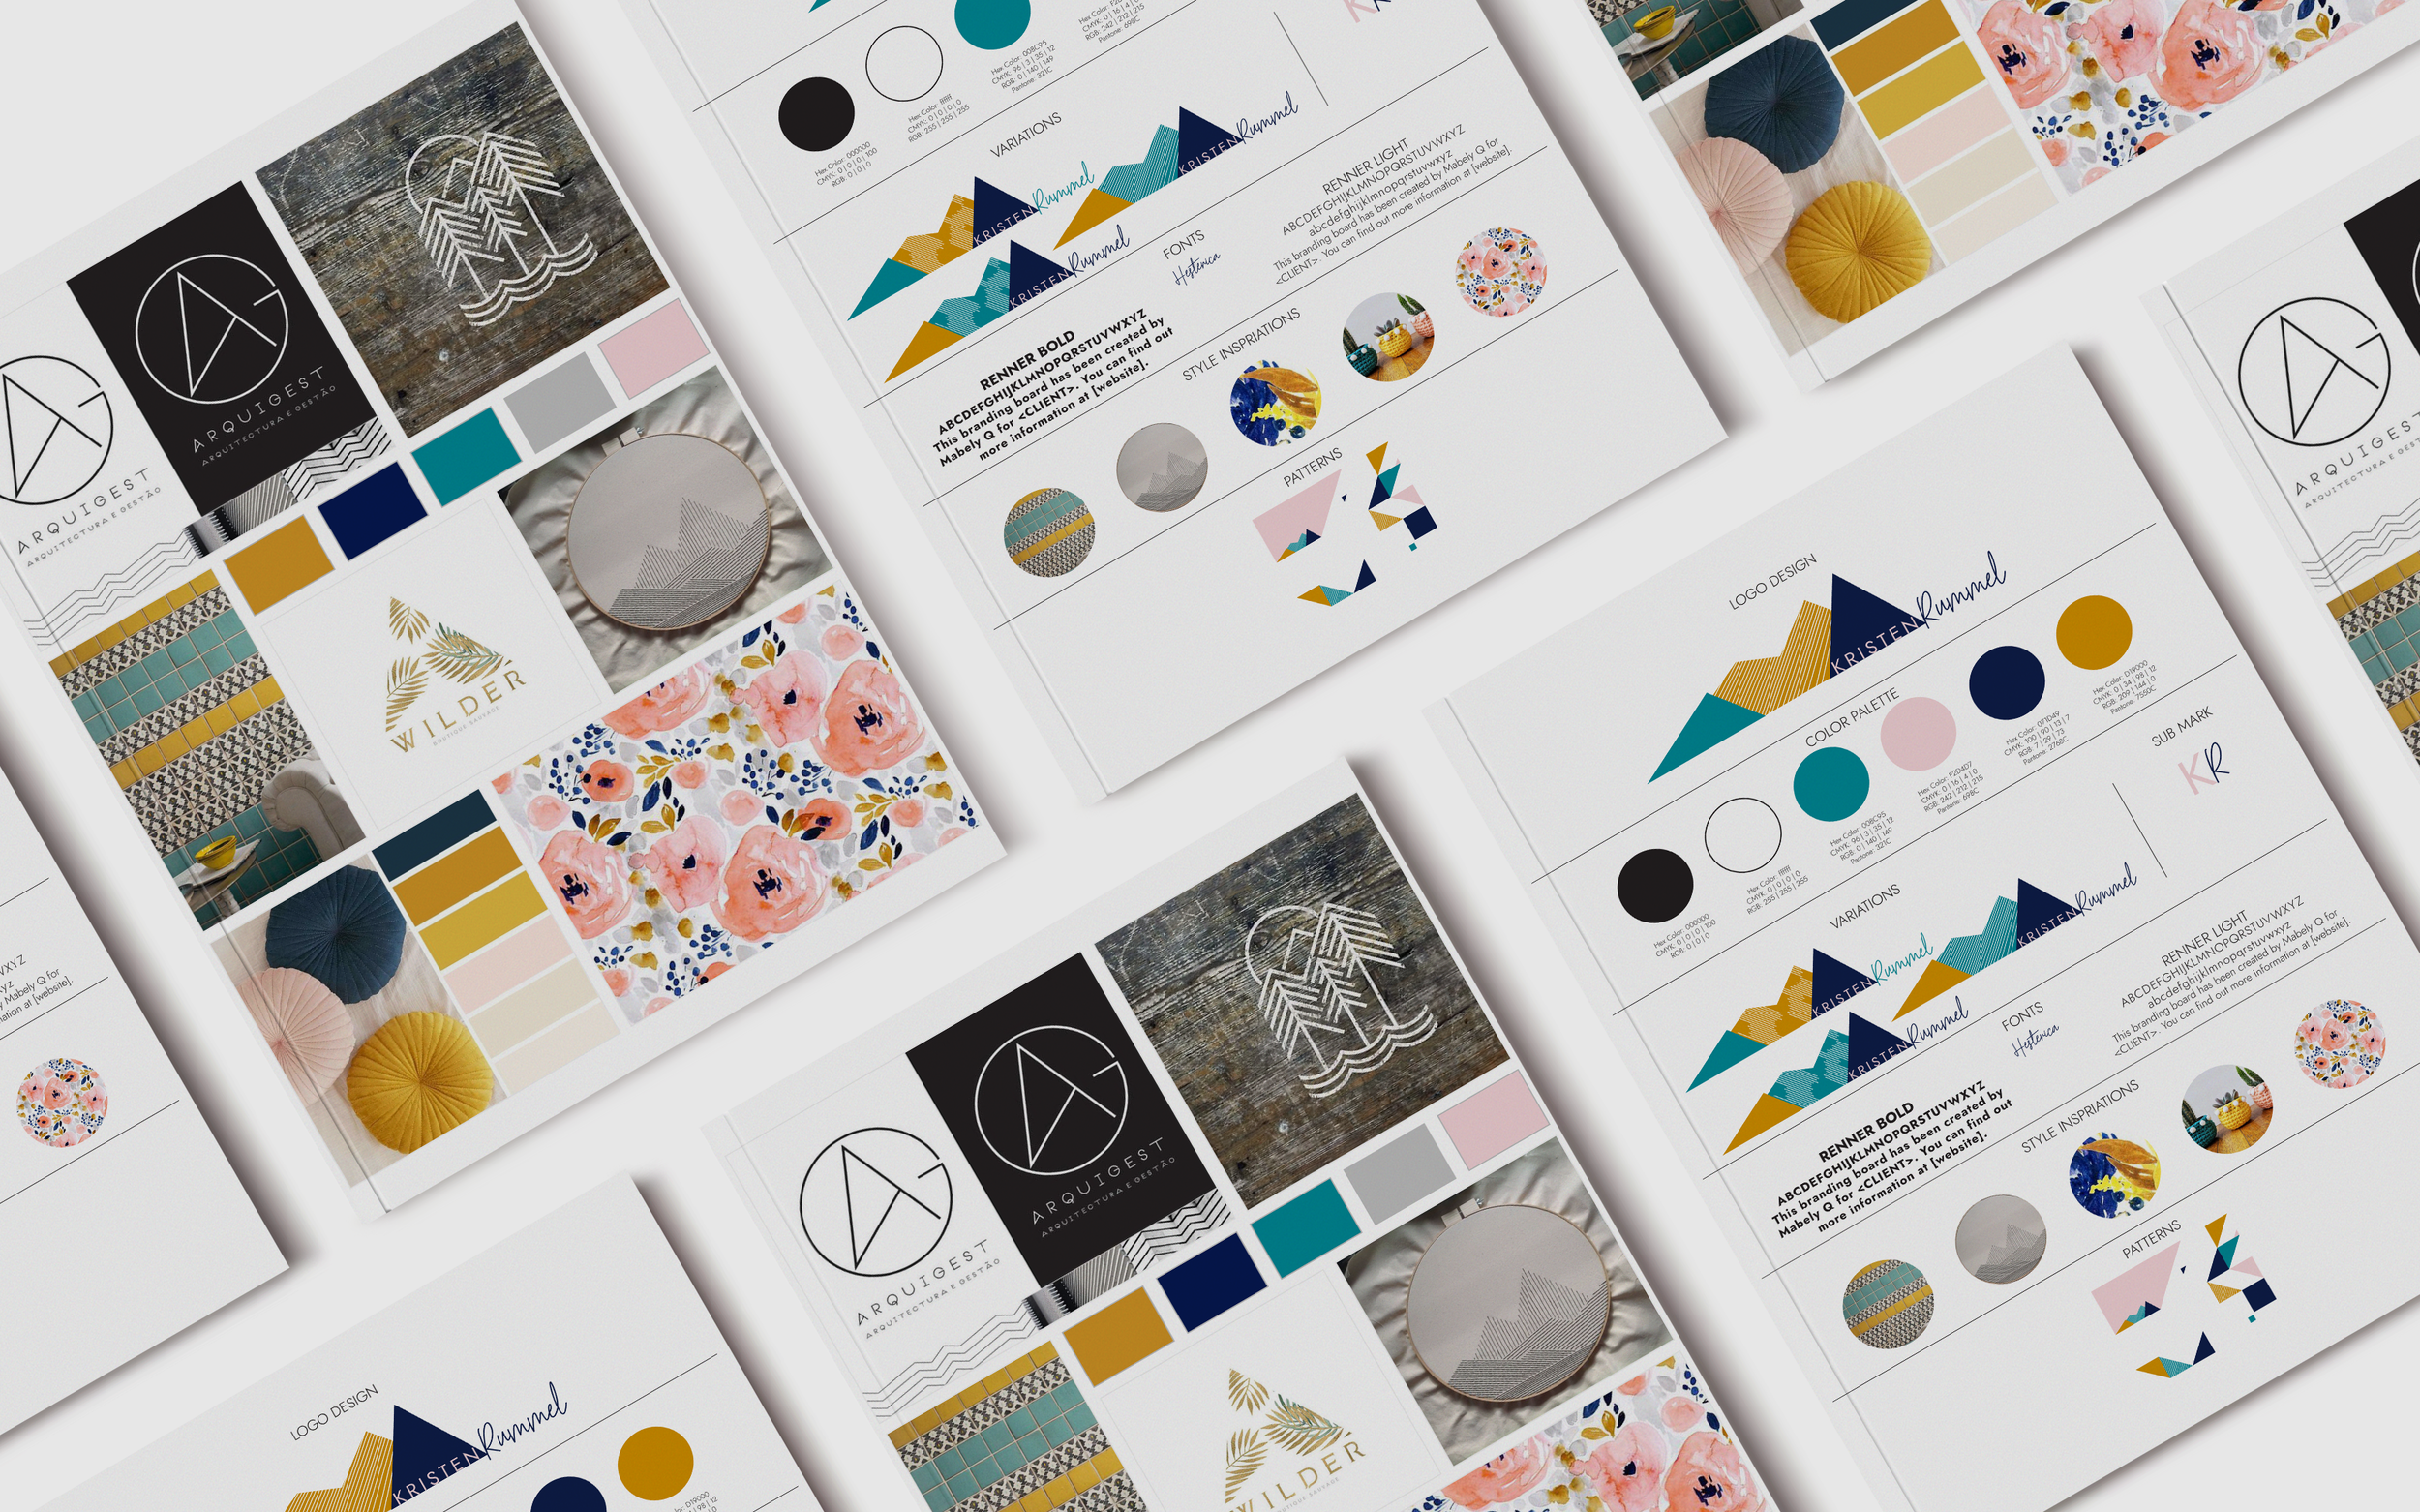 After To A T Brand: - You'll have a color palette that speaks for your brandYou'll have an original logo you loveYour fonts are on-point for your businessYou hand out business cards confidently